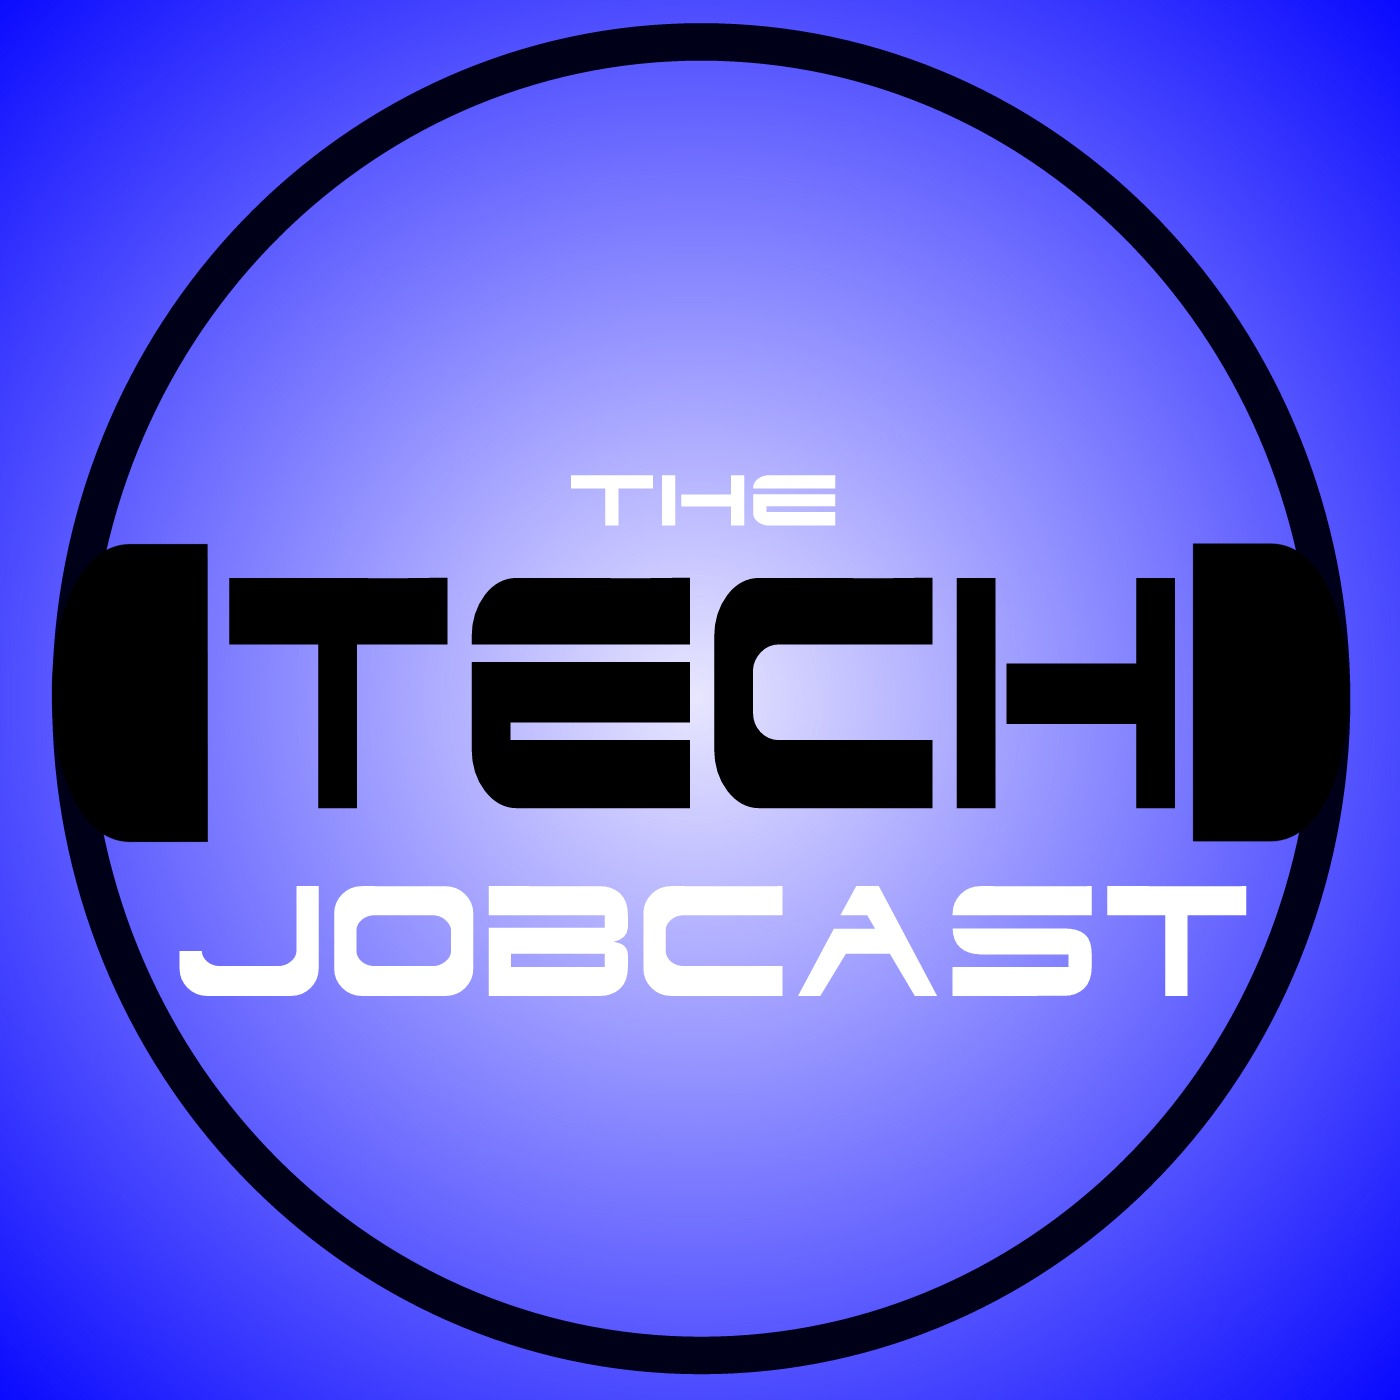 IT Job listings for the week of August 5, 2018